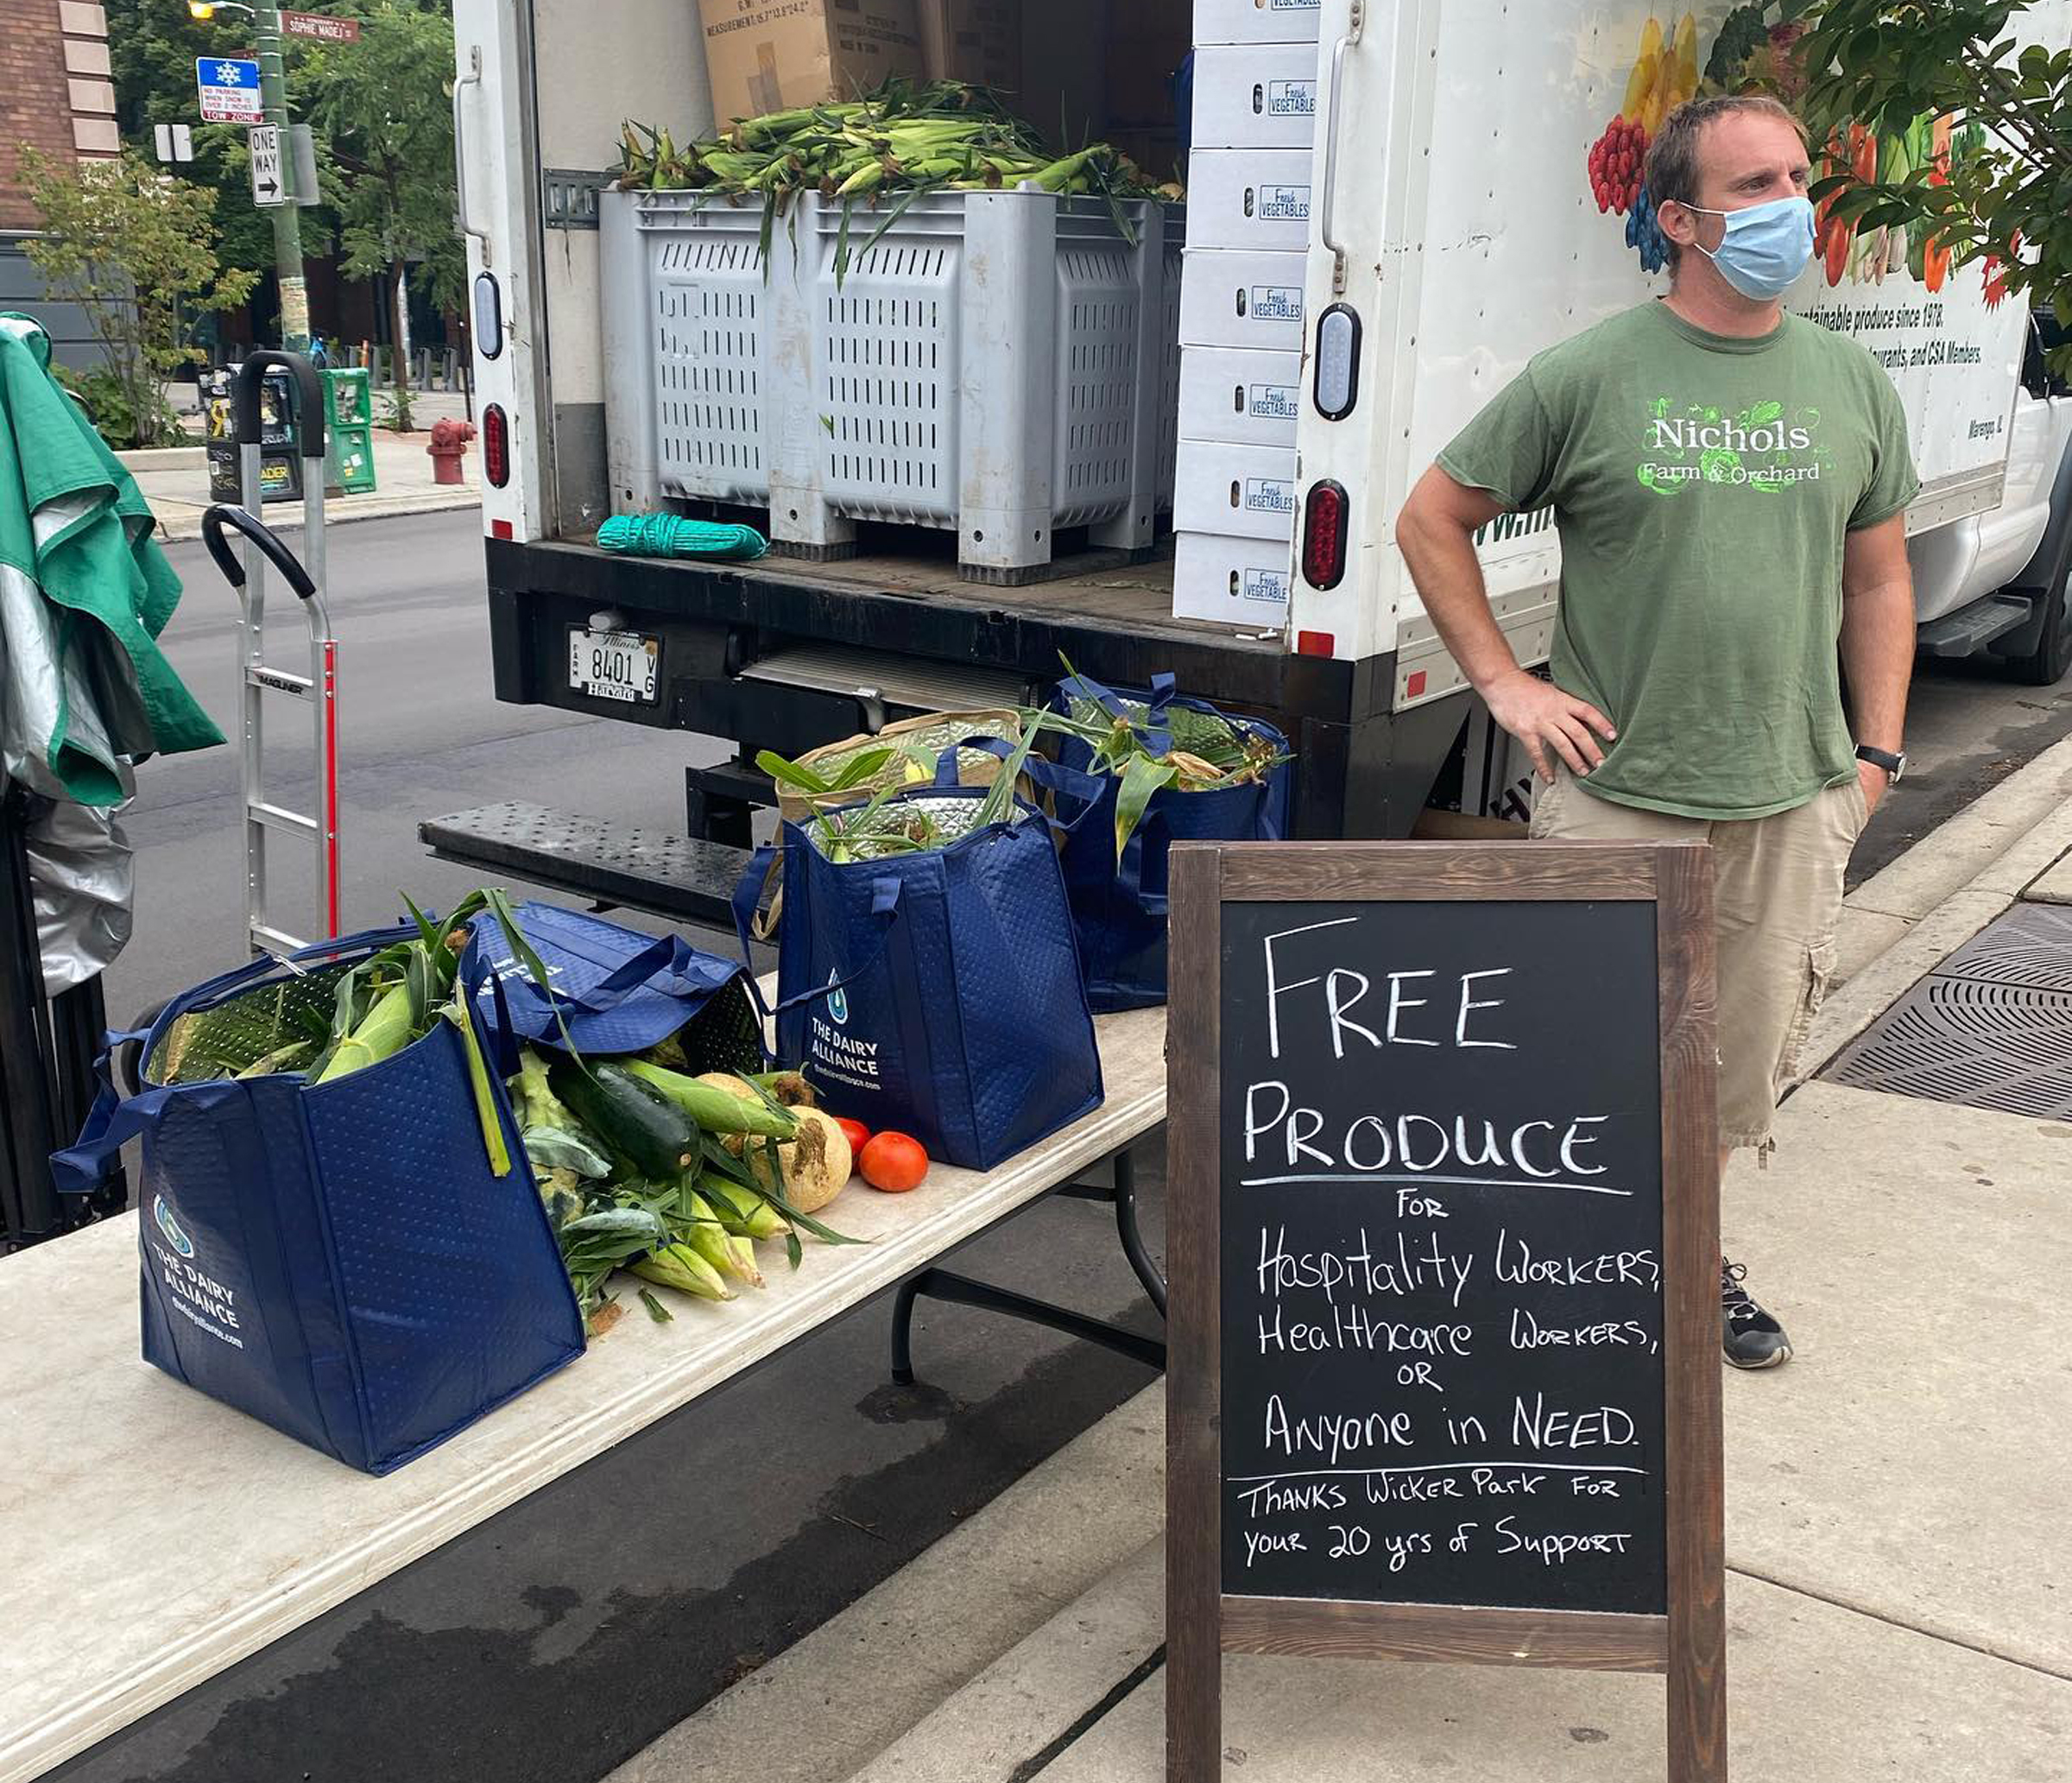 After Nichols Farm and Orchard was told July 28 they no longer could sell at the Wicker Park Farmers Market, Nick Nichols showed up anyway on Sunday, Aug. 2, 2020. He parked next to the market and gave away a truckload of produce. The neighborhood chamber of commerce said Nichols' stand was removed due to violations of COVID-19 protocol.